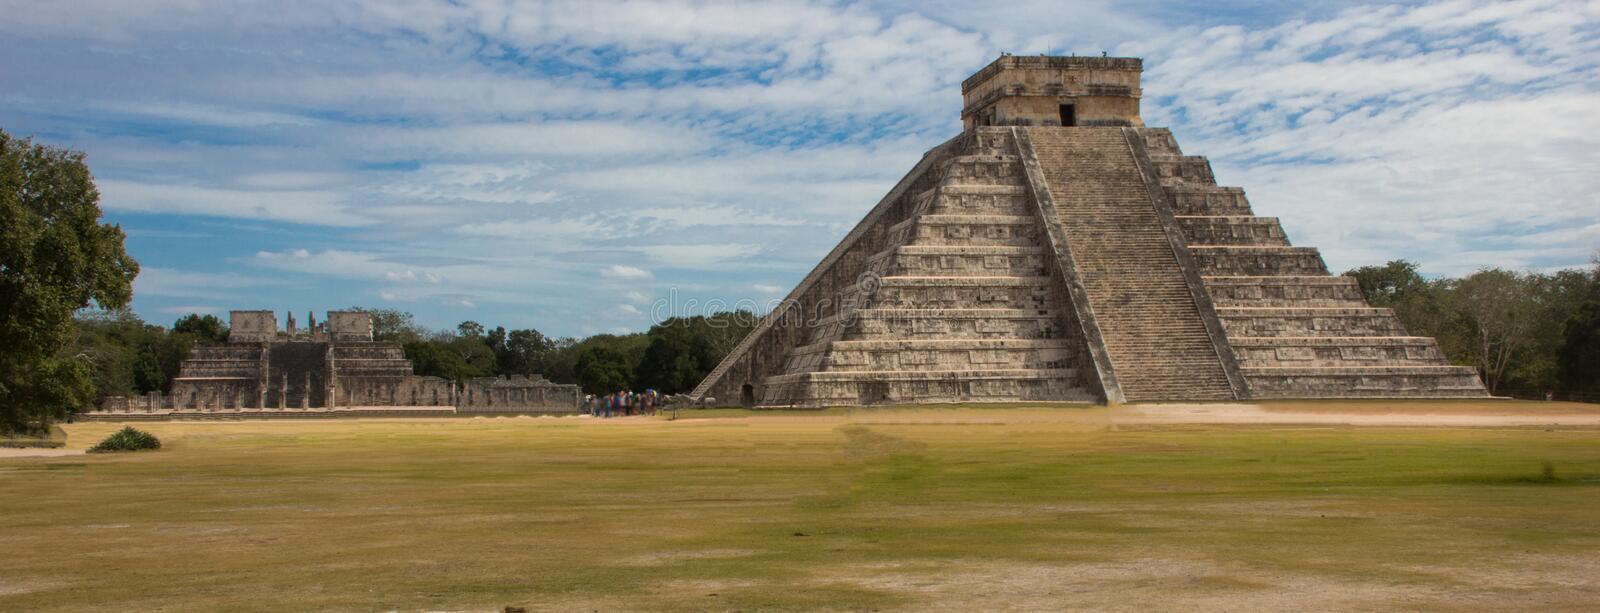 The Main Temple at the ancient ruins of Chichen Itza royalty free stock photos